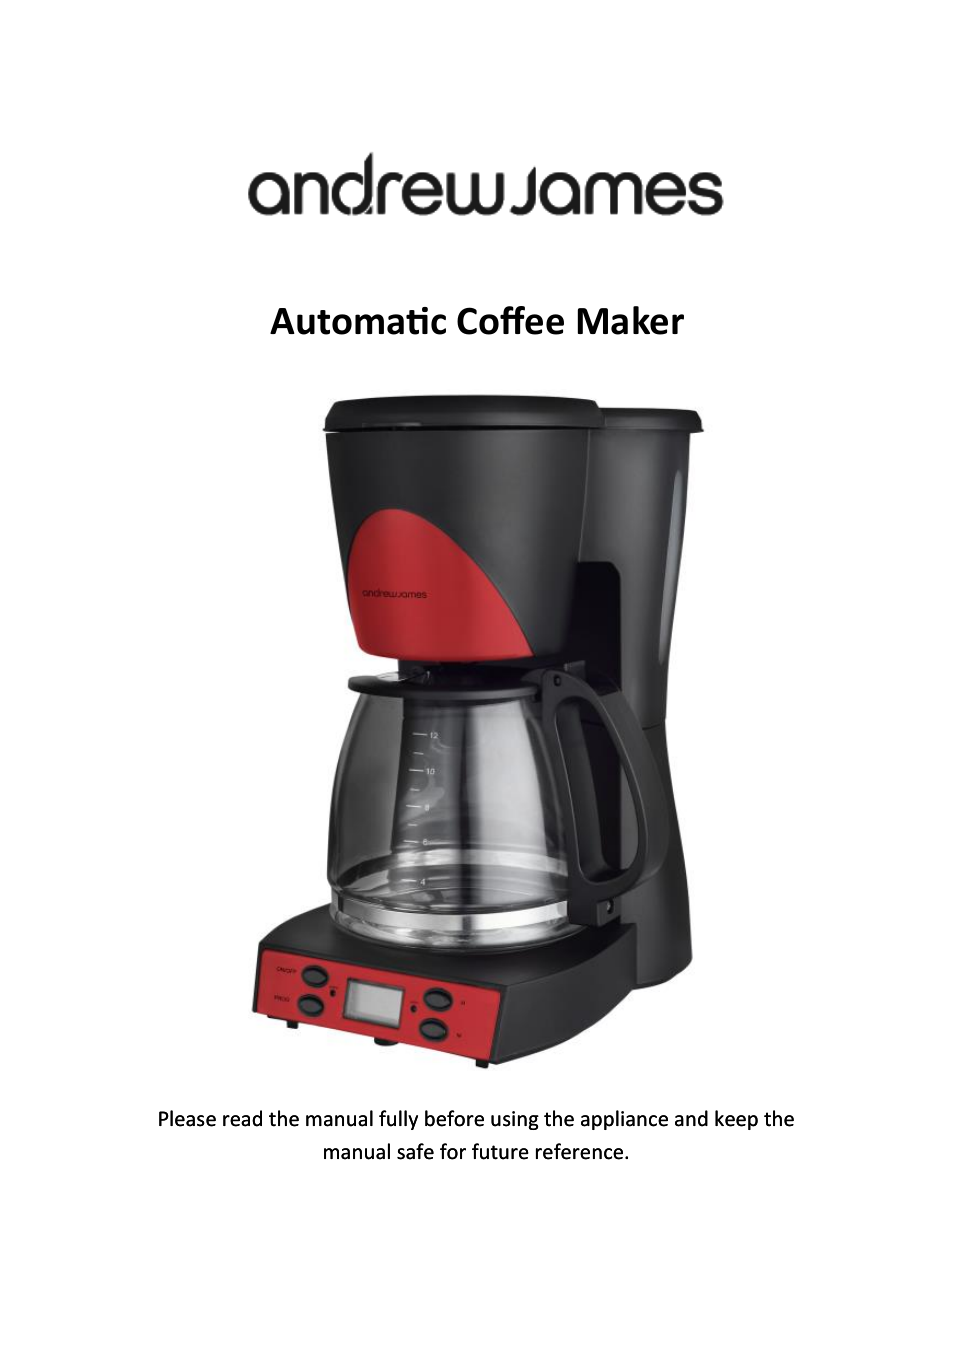 Andrew James Aj000564 1000w Automatic Filter Coffee Machine